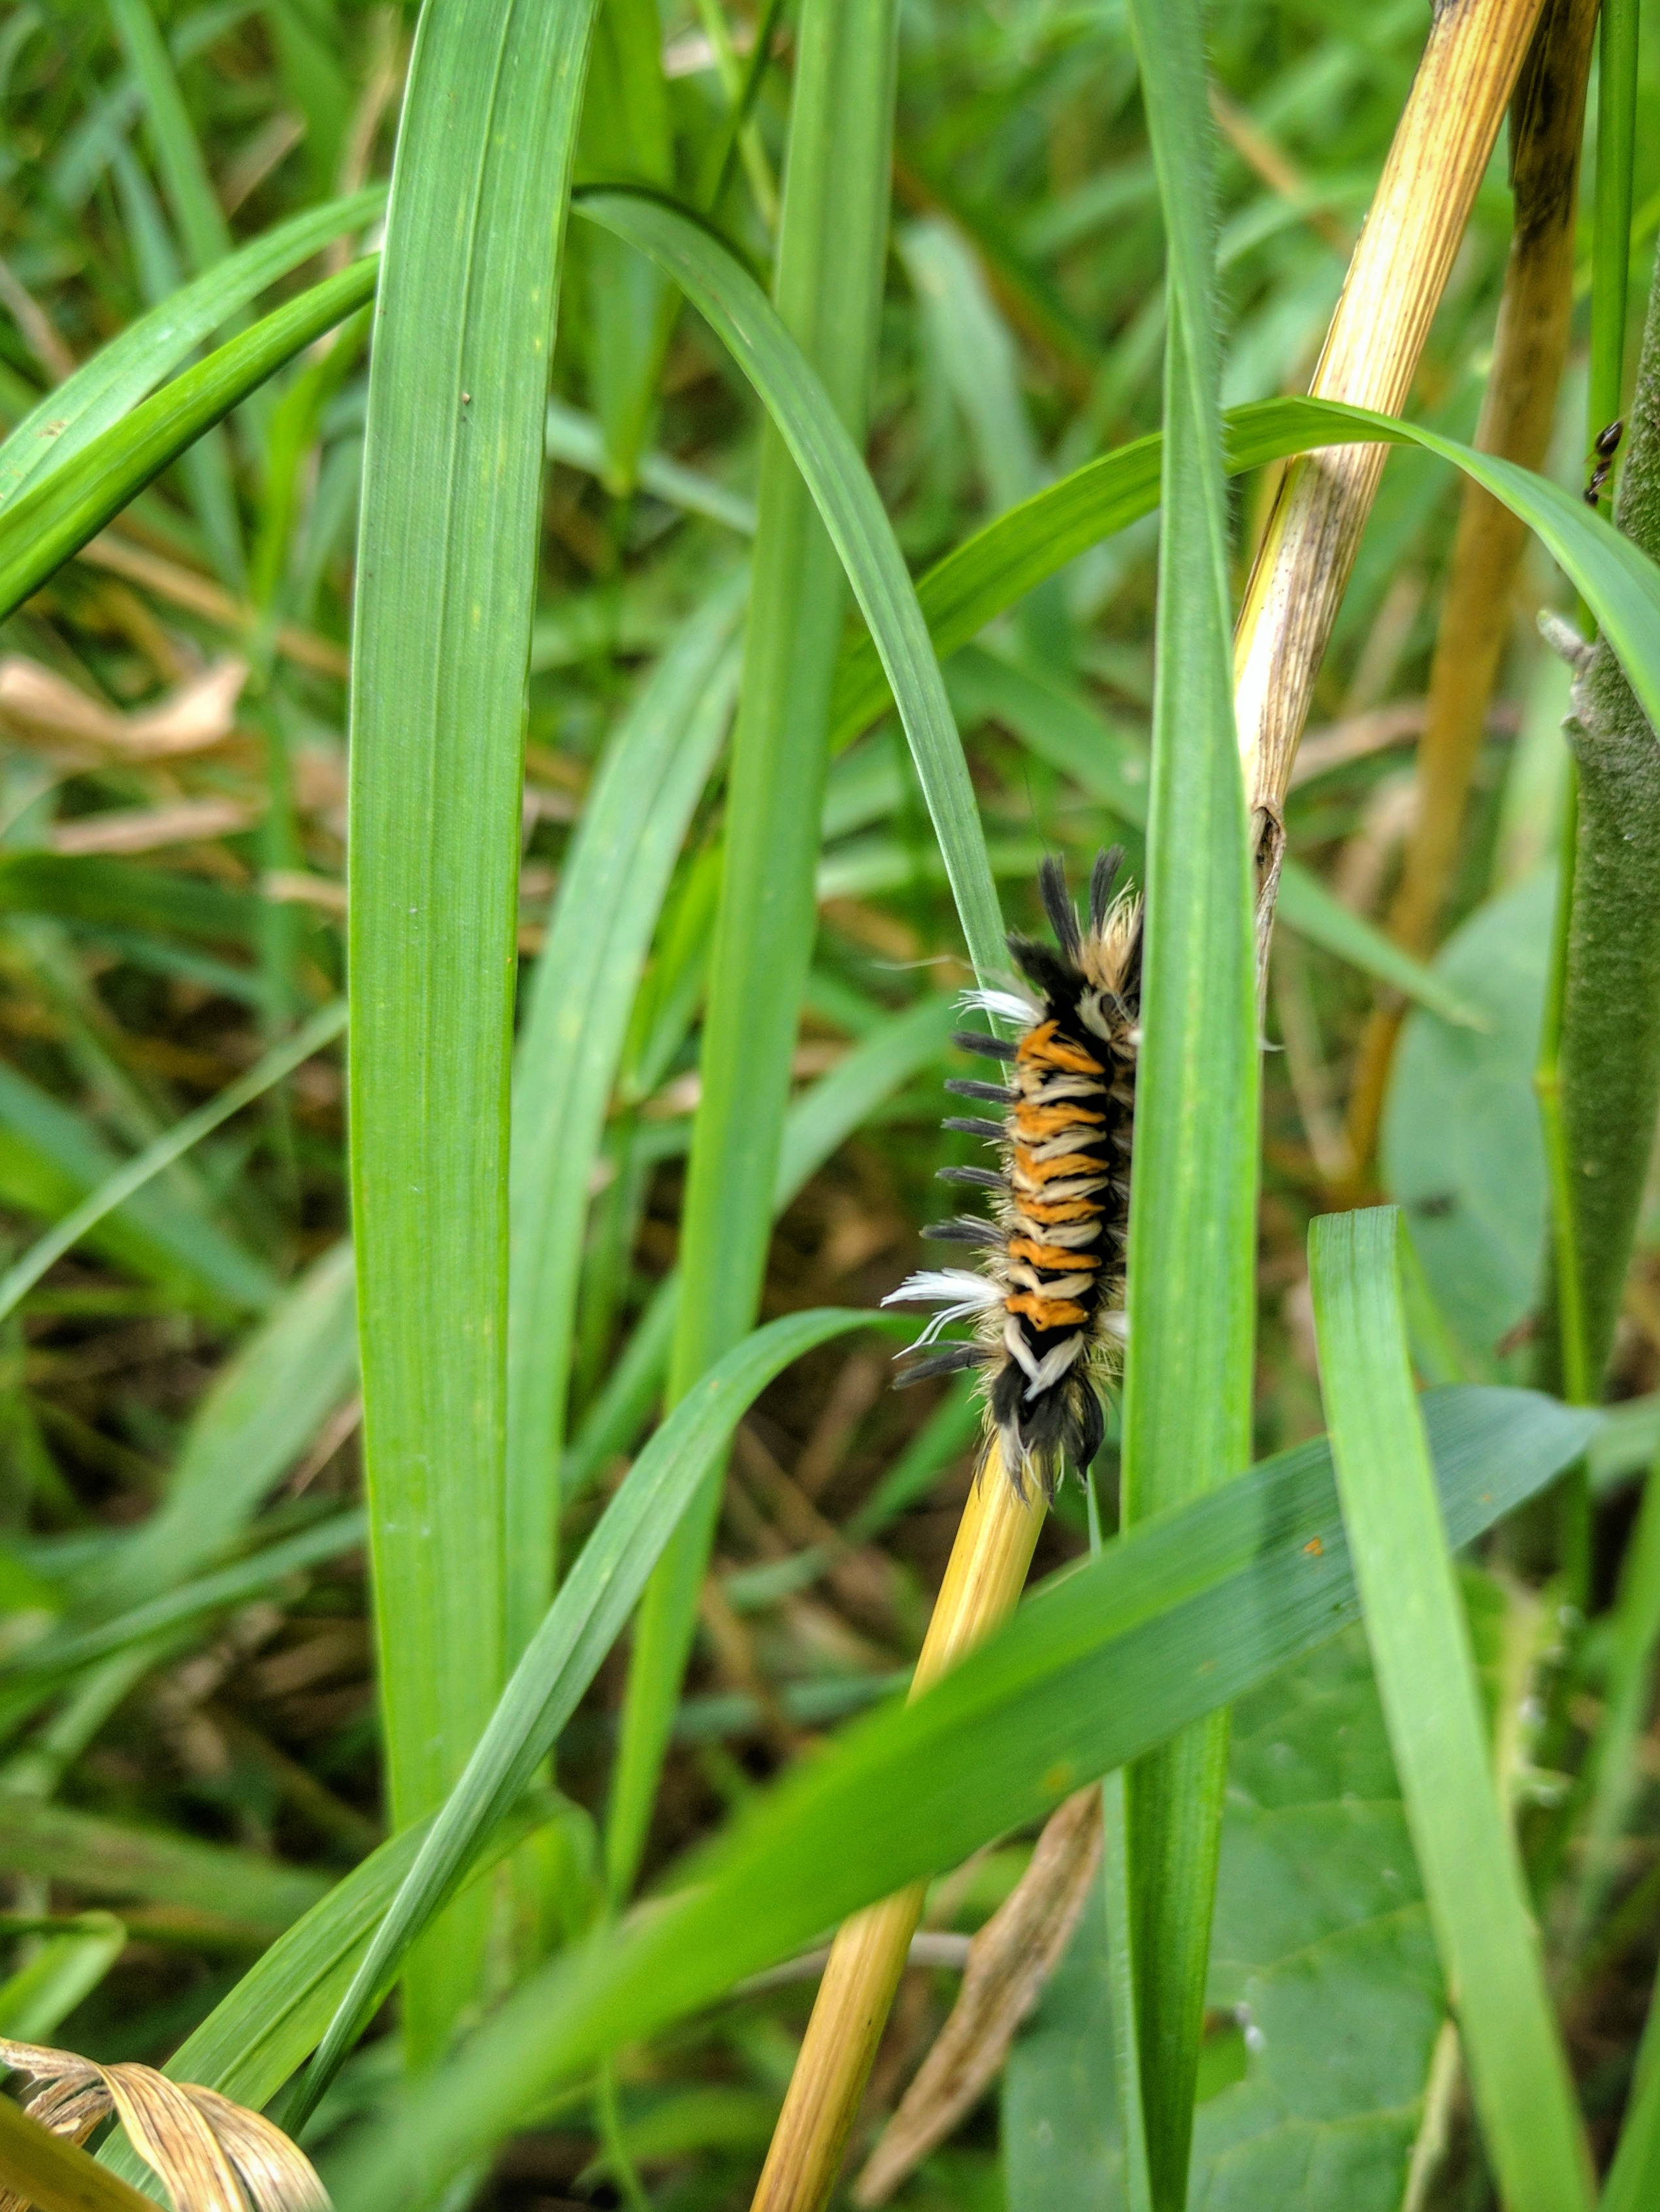 Milkweed Tussock Moth Caterpillar by Courtney Celley